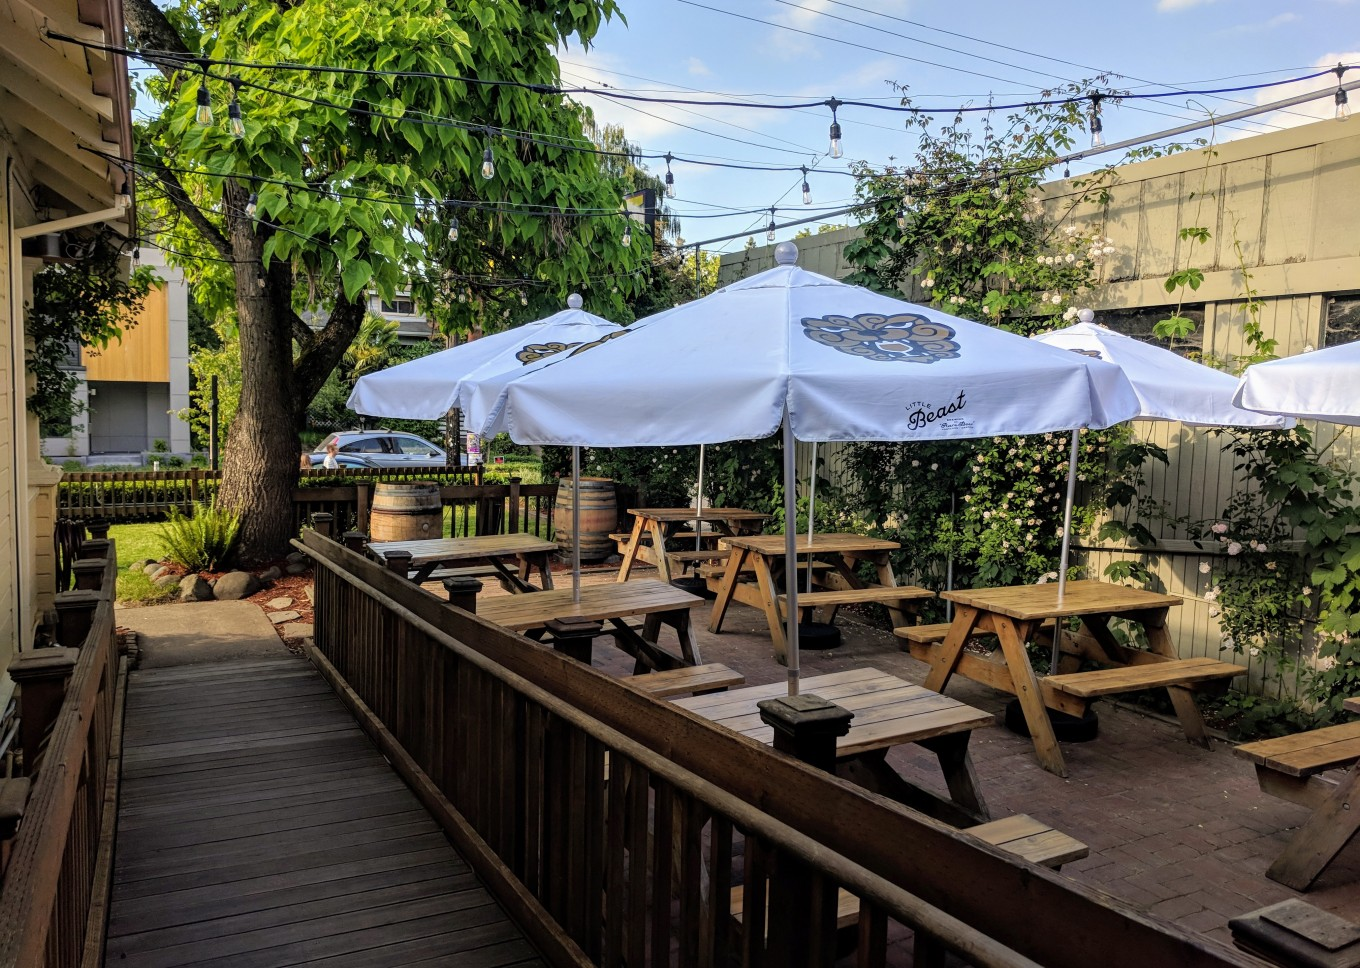 Little Beast Beer Garden Umbrellas